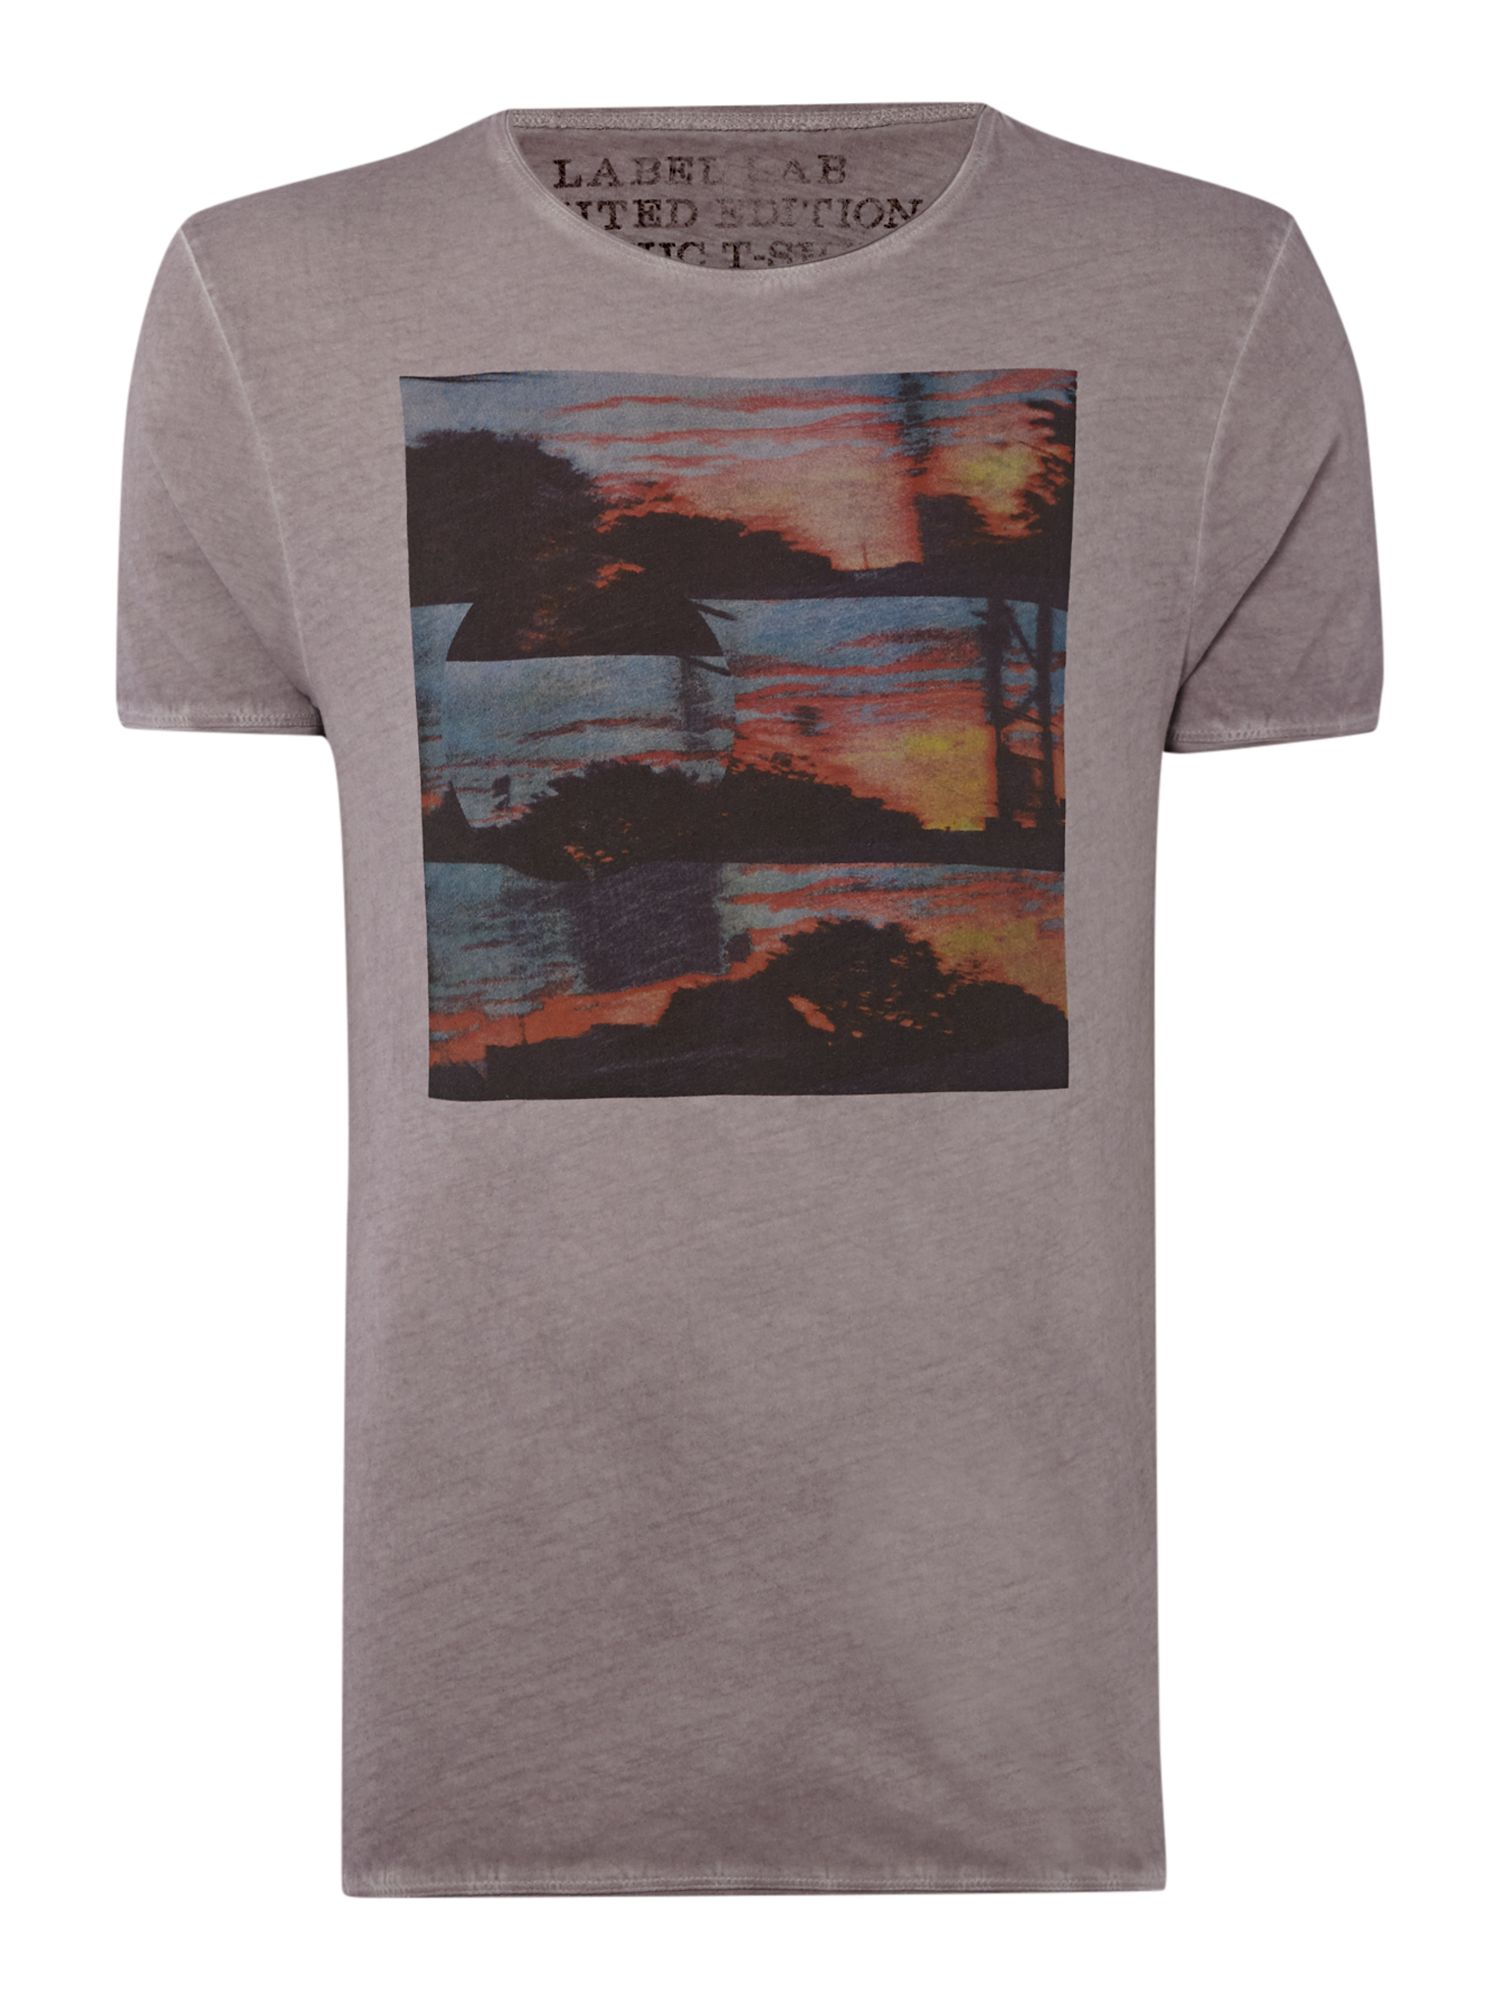 Passing by graphic tee